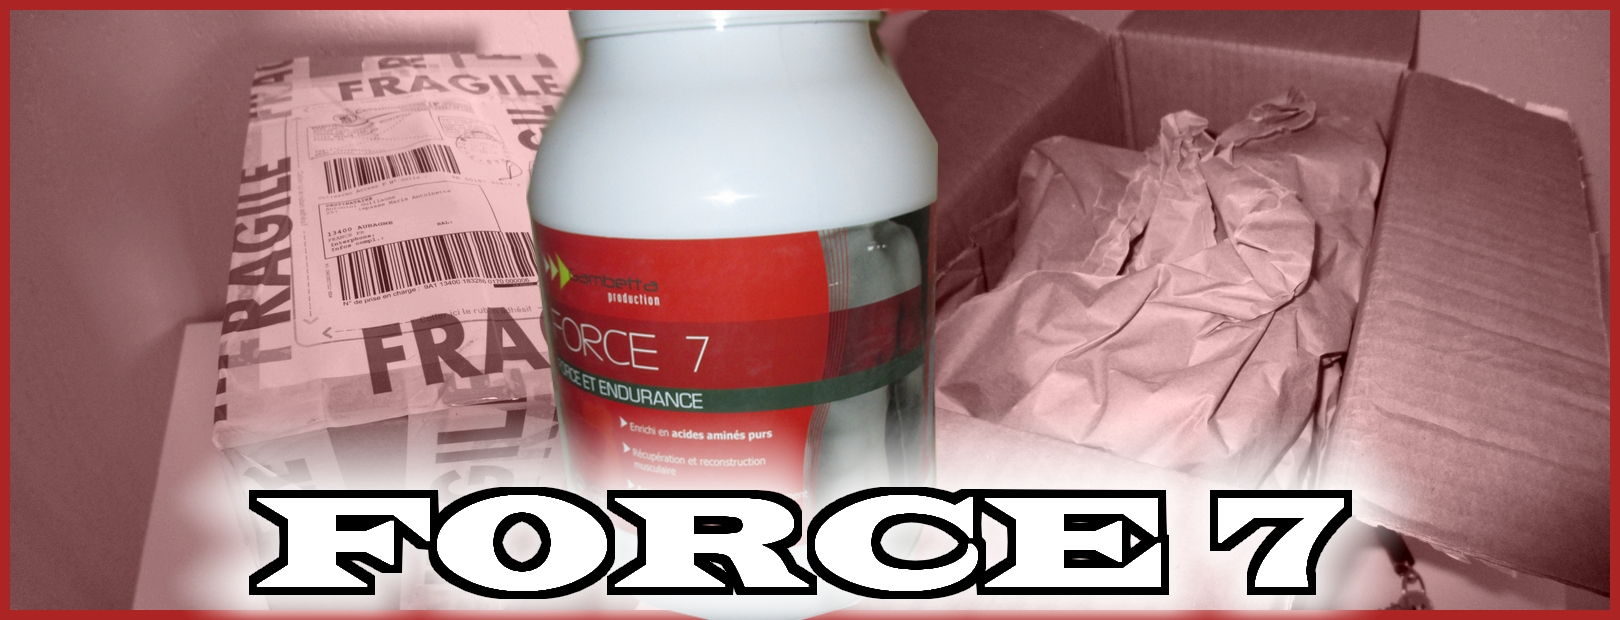 Force-7-nutrixlab-proteine-musculation